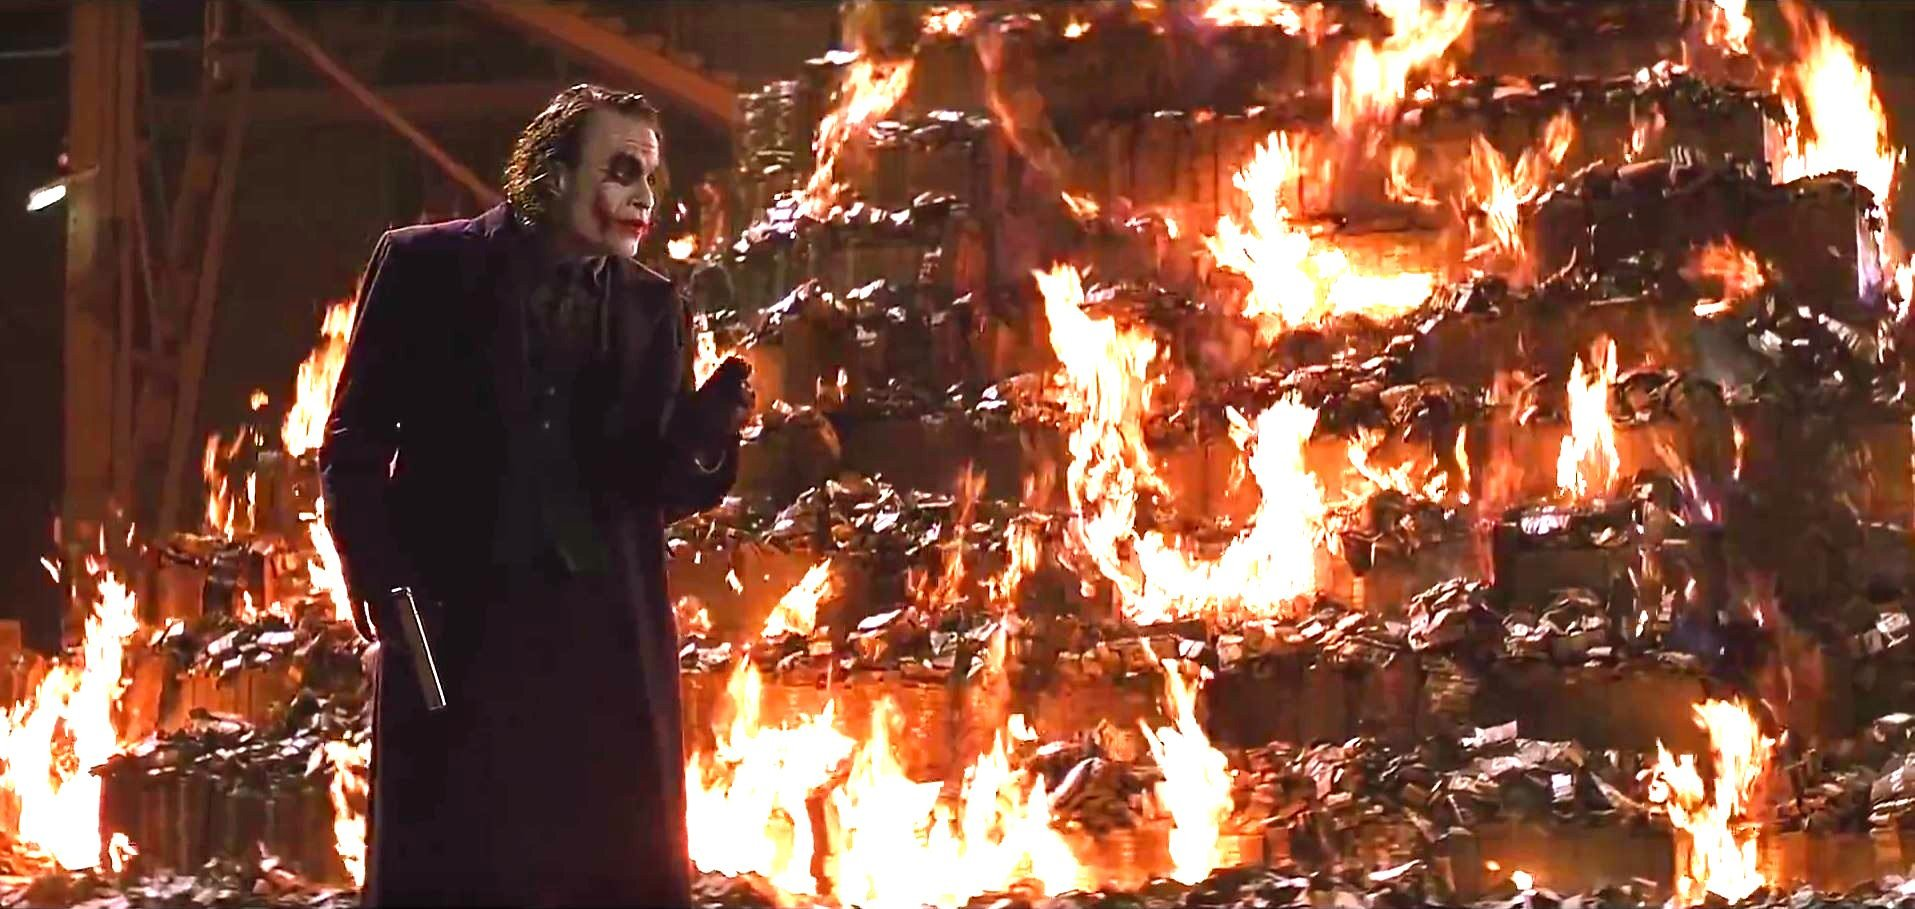 Joker stands in front of a bonfire of cash. (YouTube screengrab)